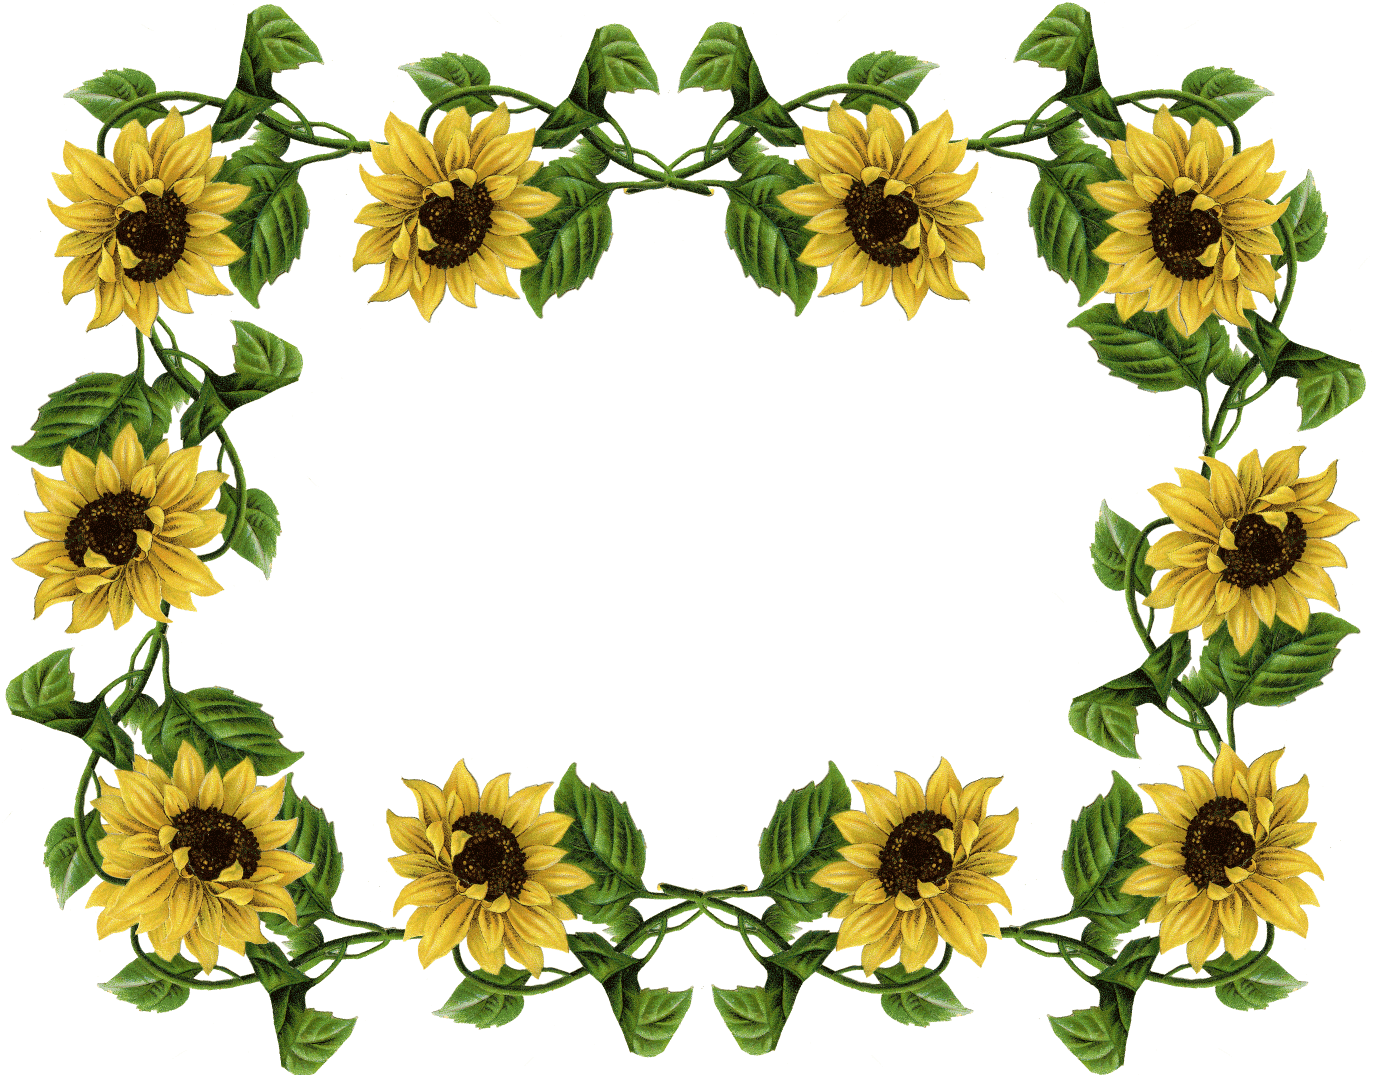 sunflower pics frame sunflowers pinterest borders free rh pinterest com Single Sunflower Clip Art Borders Sunflower Clip Art Borders & Dried Corn